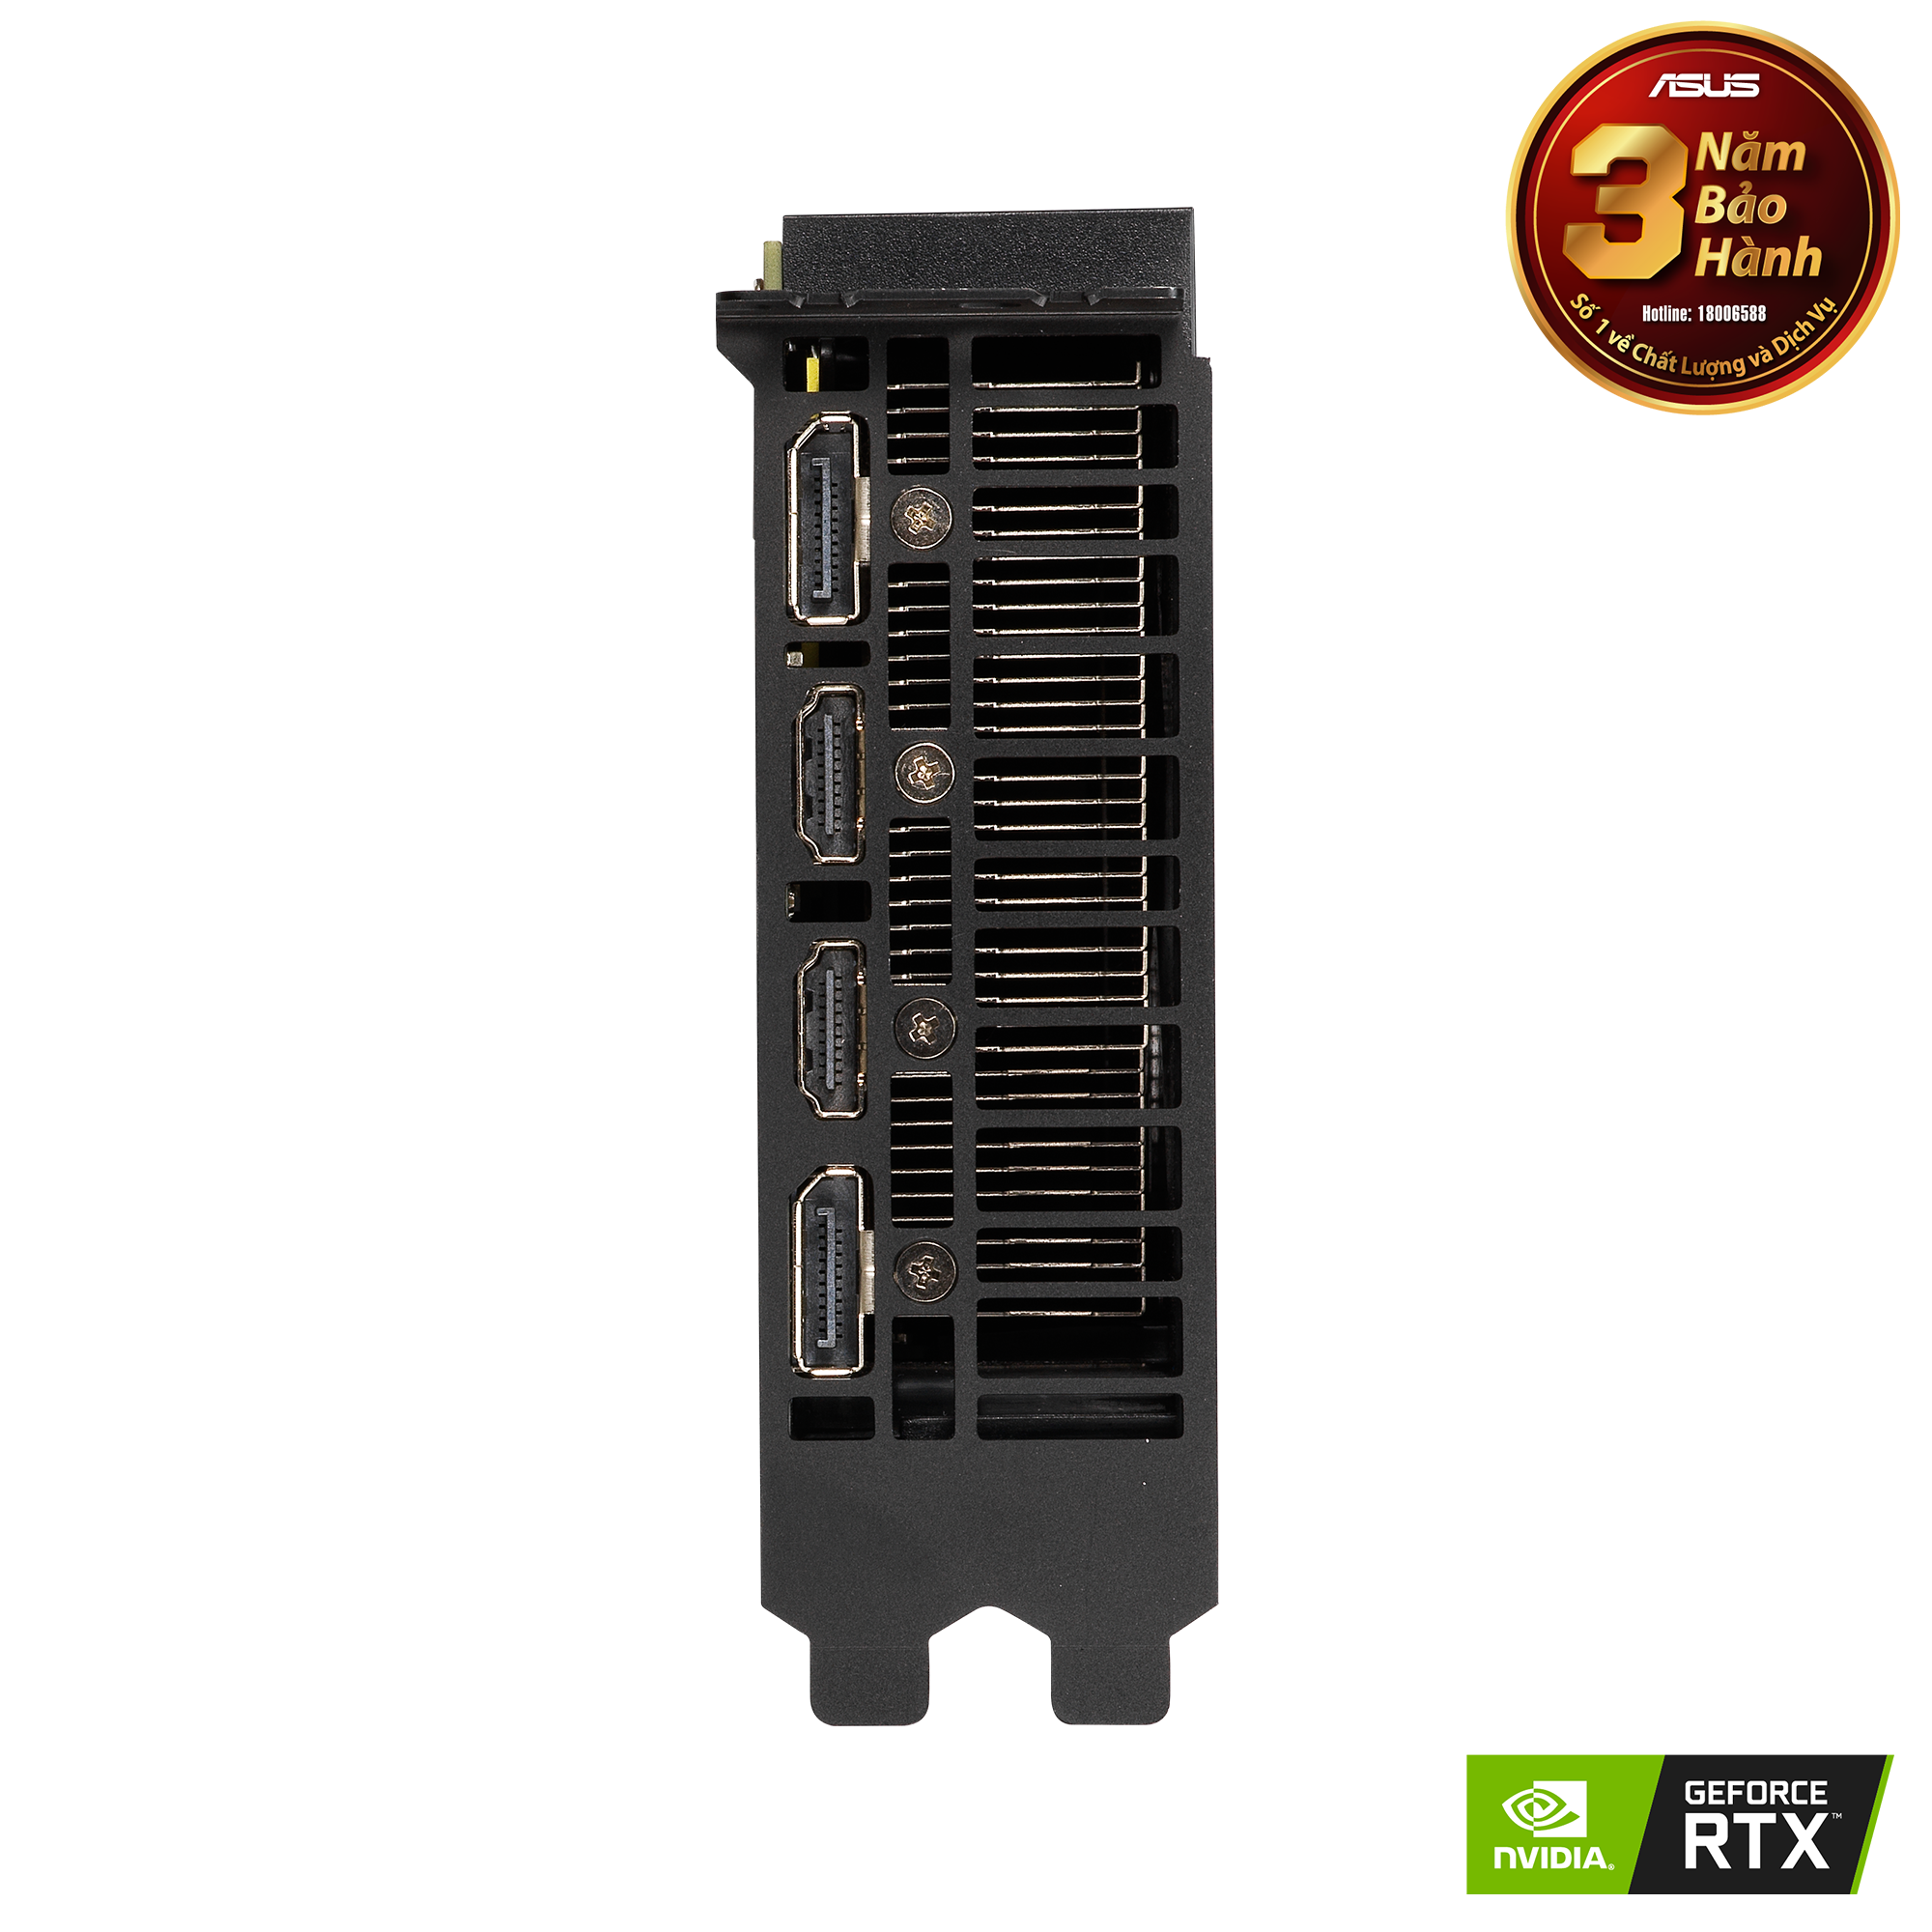 ASUS Turbo GeForce® RTX 2060 SUPER 8GB GDDR6